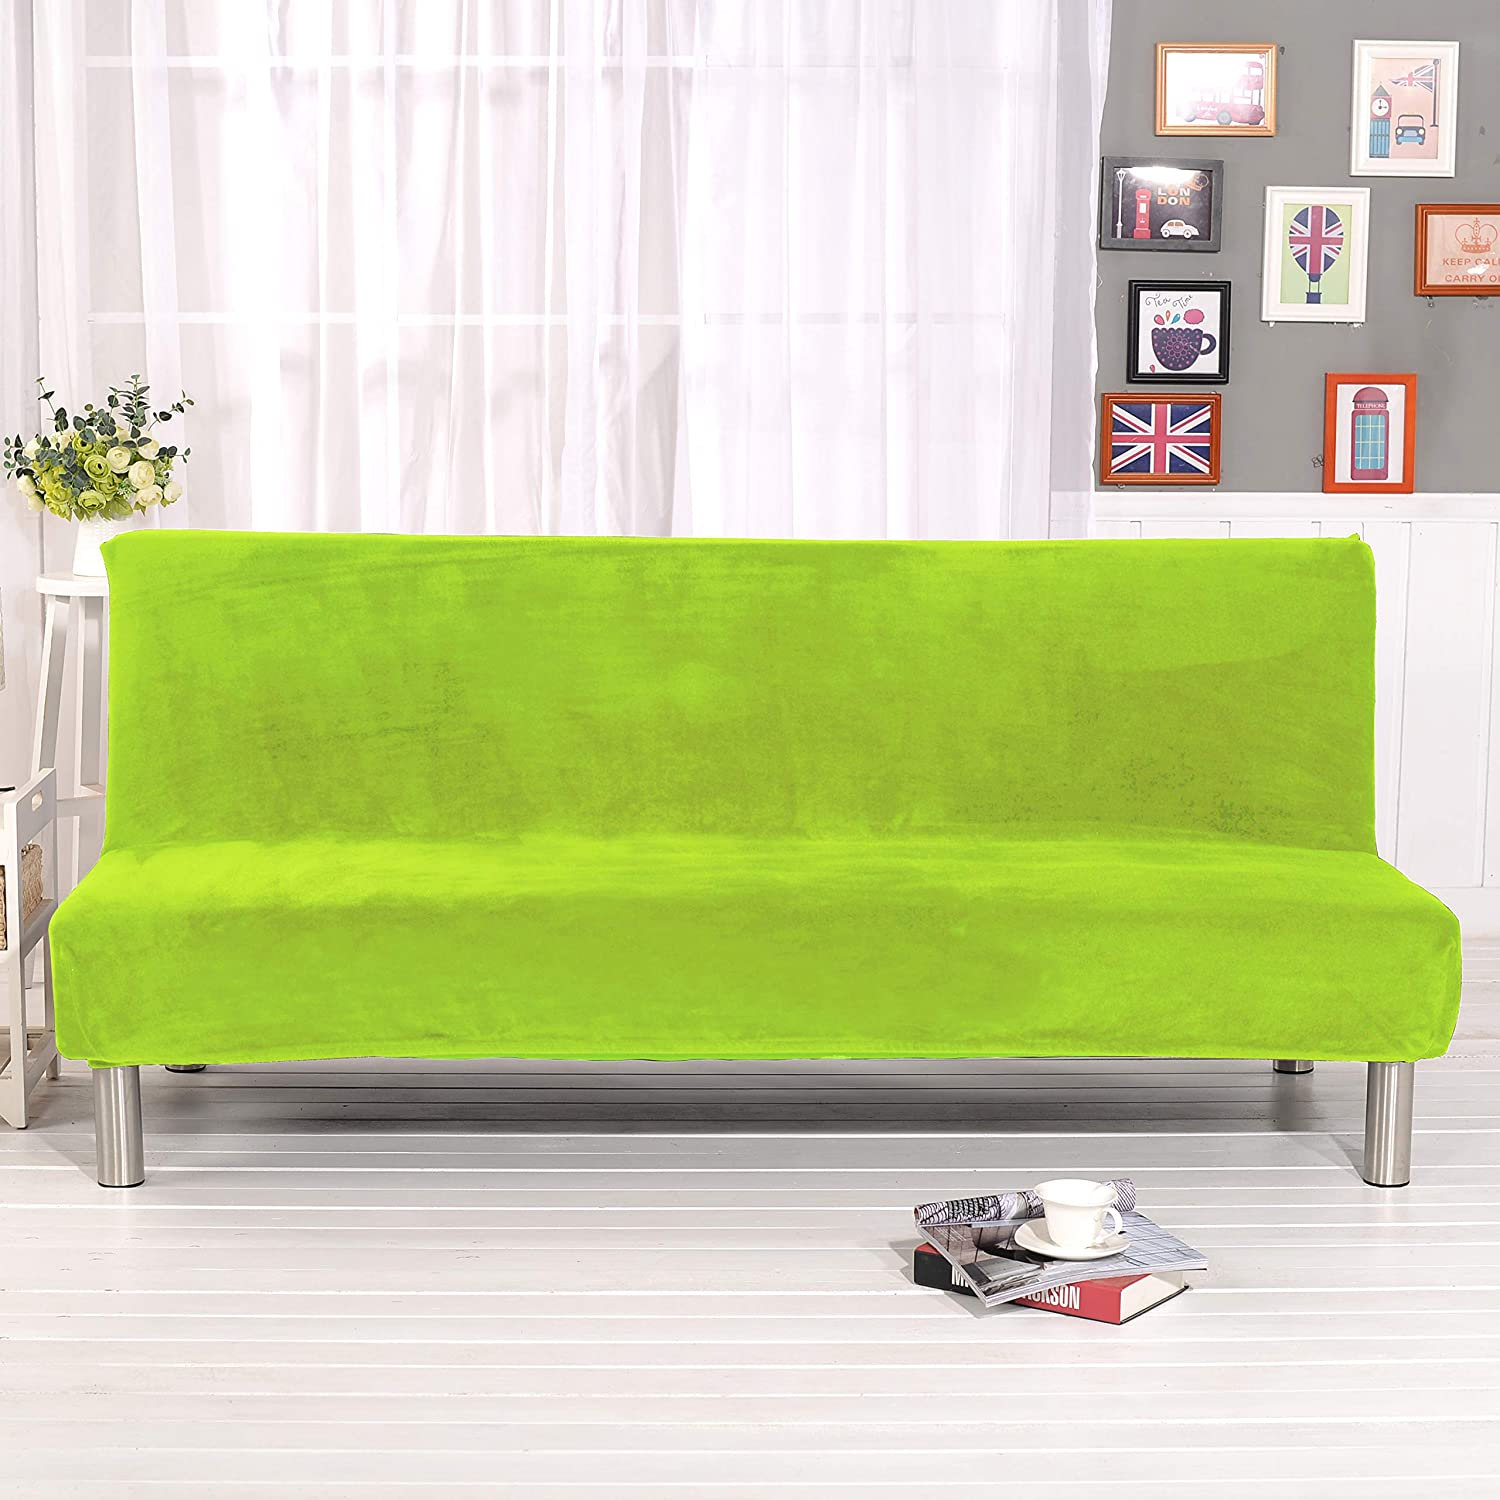 Velvet Sofa Bed Covers Some reservation Polyester Tampa Mall Futon Spandex Stretch Fabric Sl